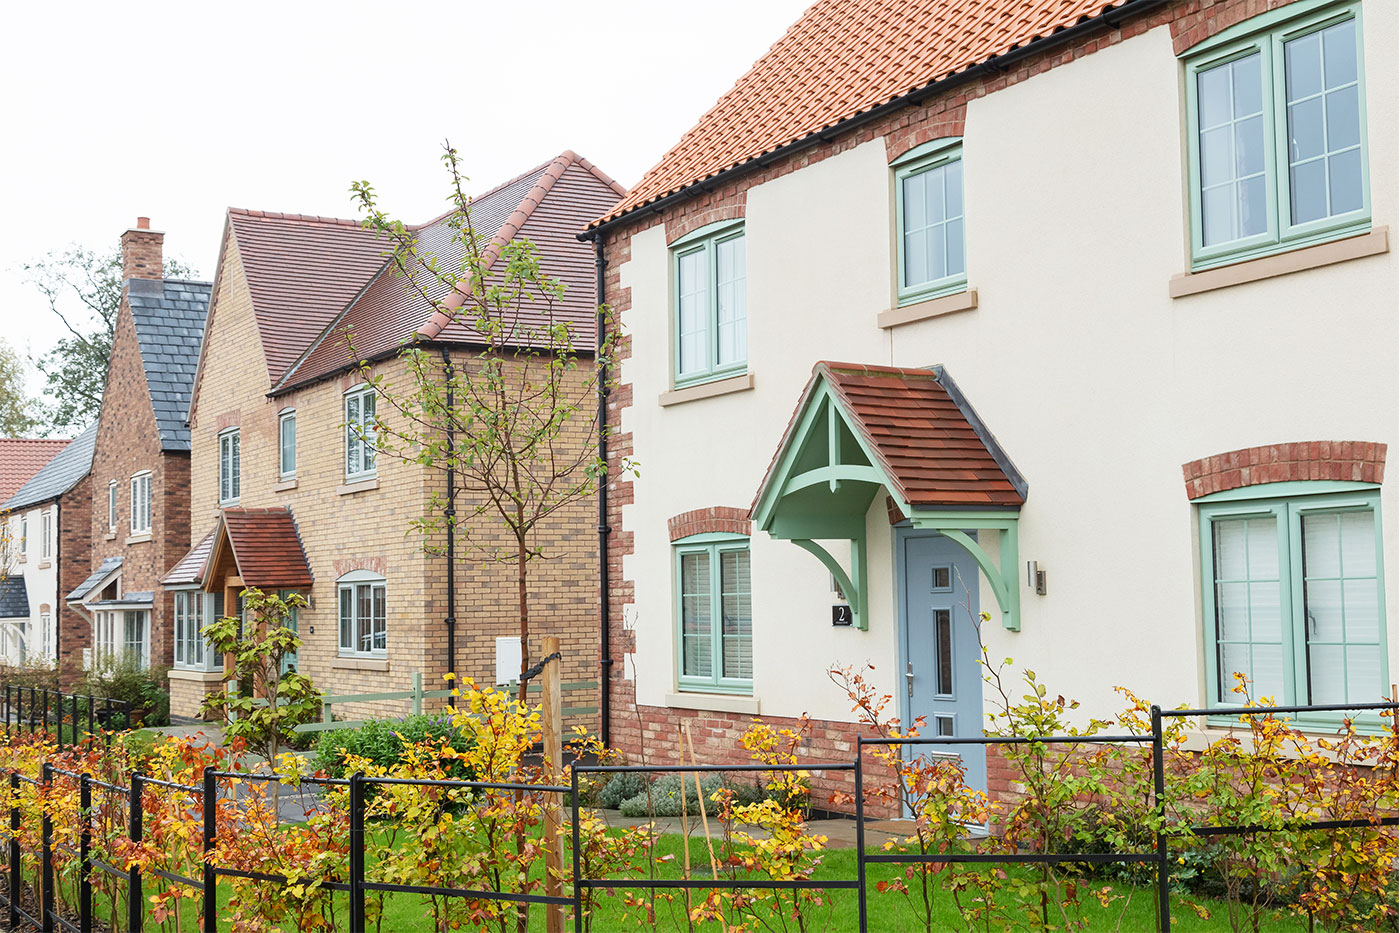 A row of new homes on Lodge Lane in Nettleham